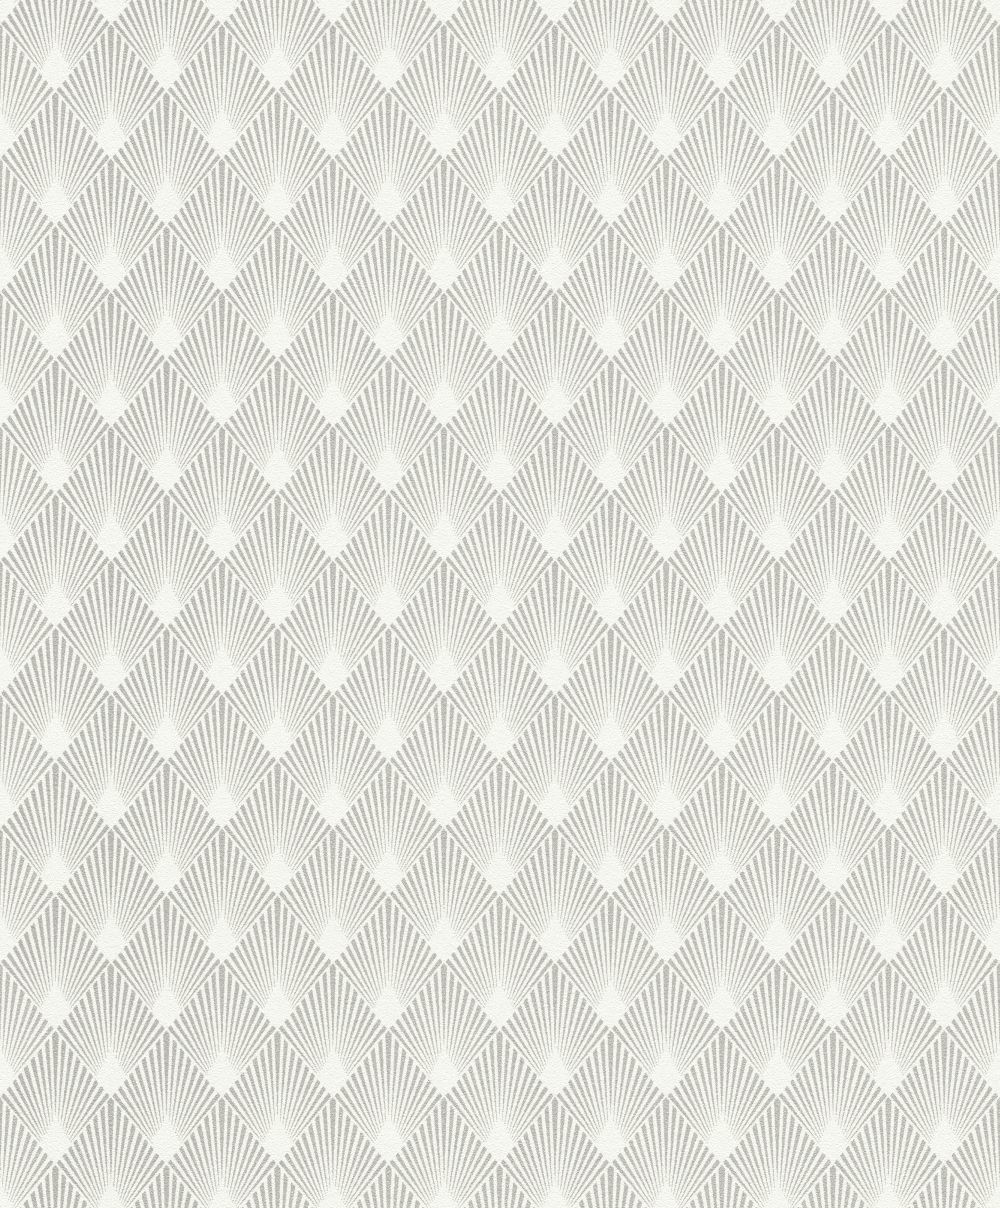 Albany Deco Sun Grey Wallpaper - Product code: 433647